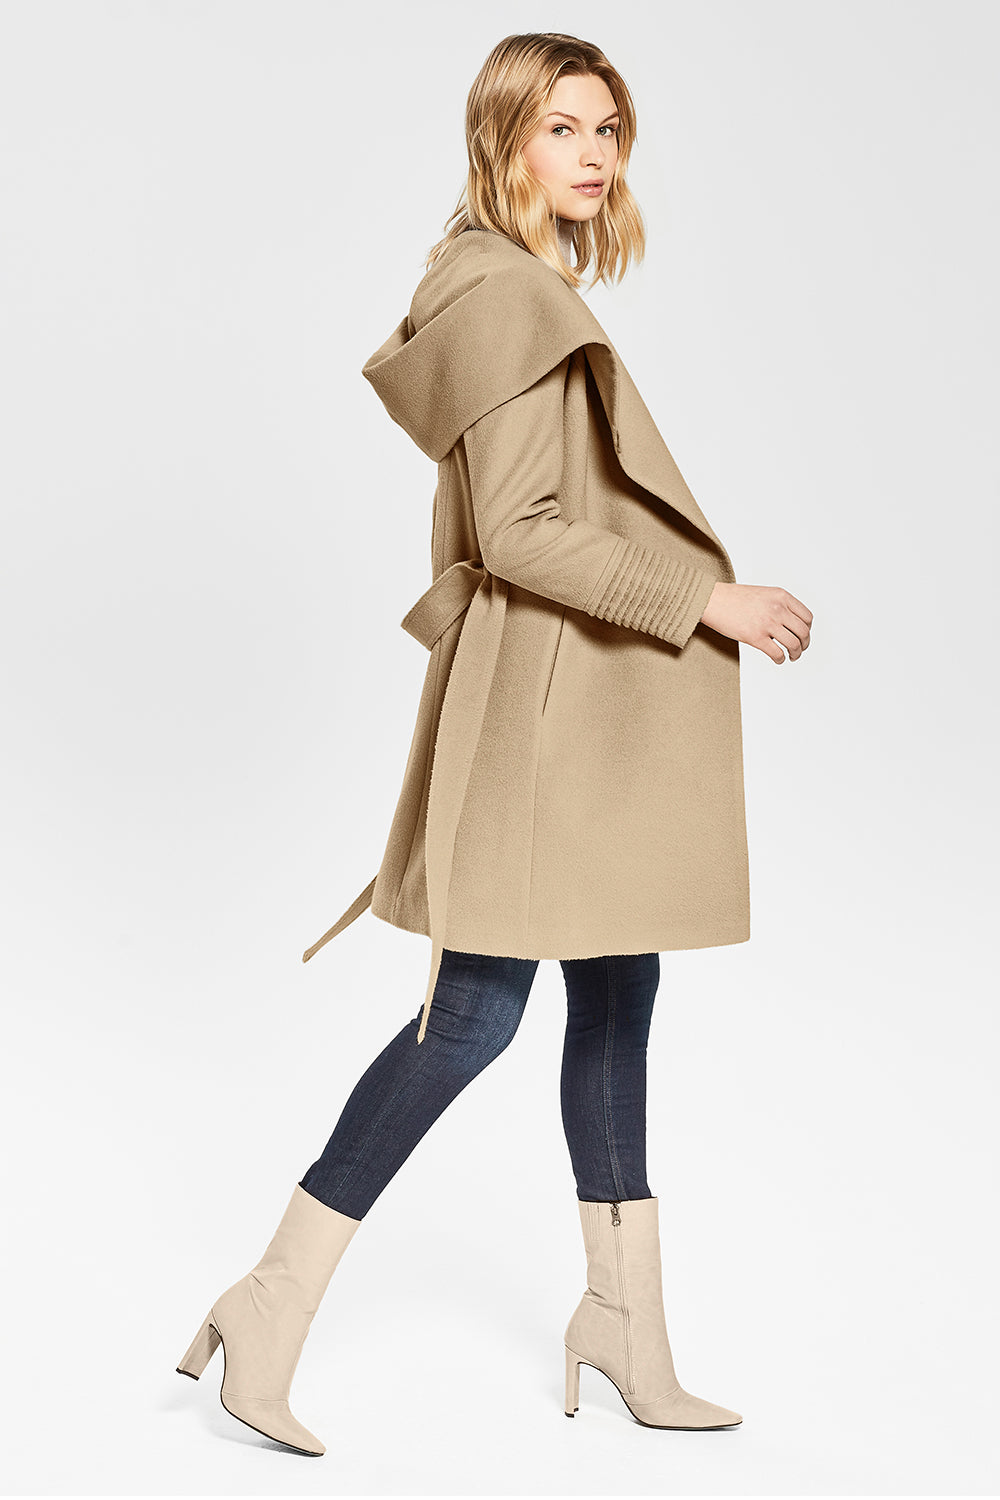 Sentaler Mid Length Hooded Wrap Coat featured in Baby Alpaca and available in Camel. Seen from side.